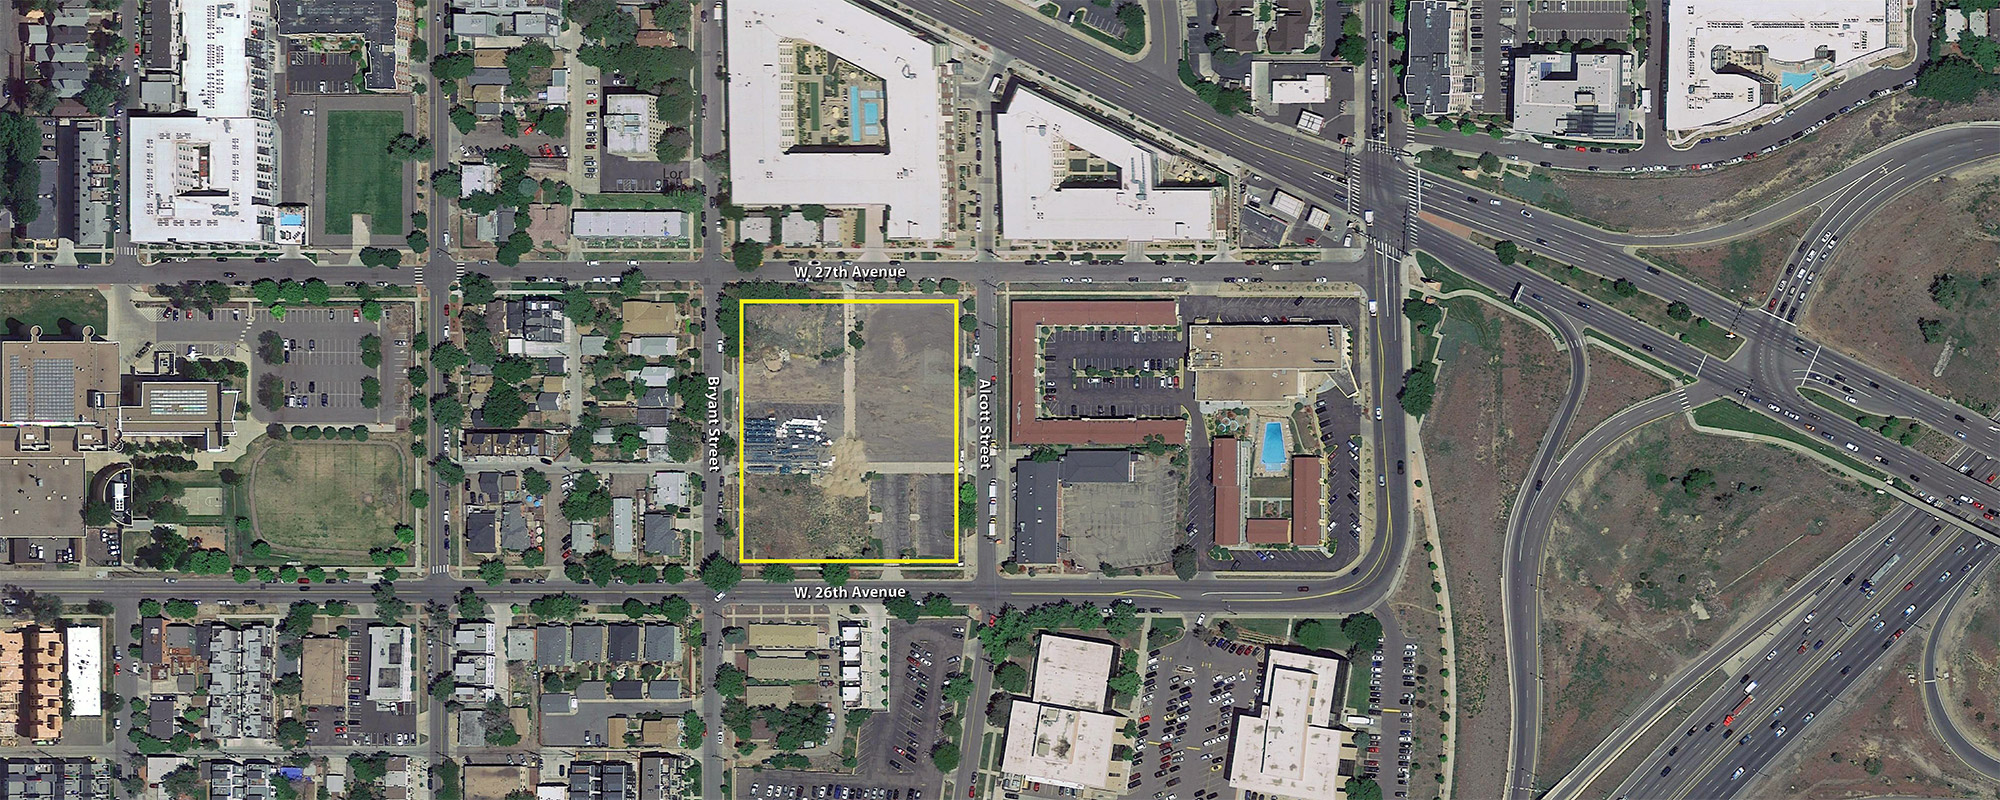 Location of proposed multifamily residential project by Tessler Development. Base image courtesy of Google Earth.